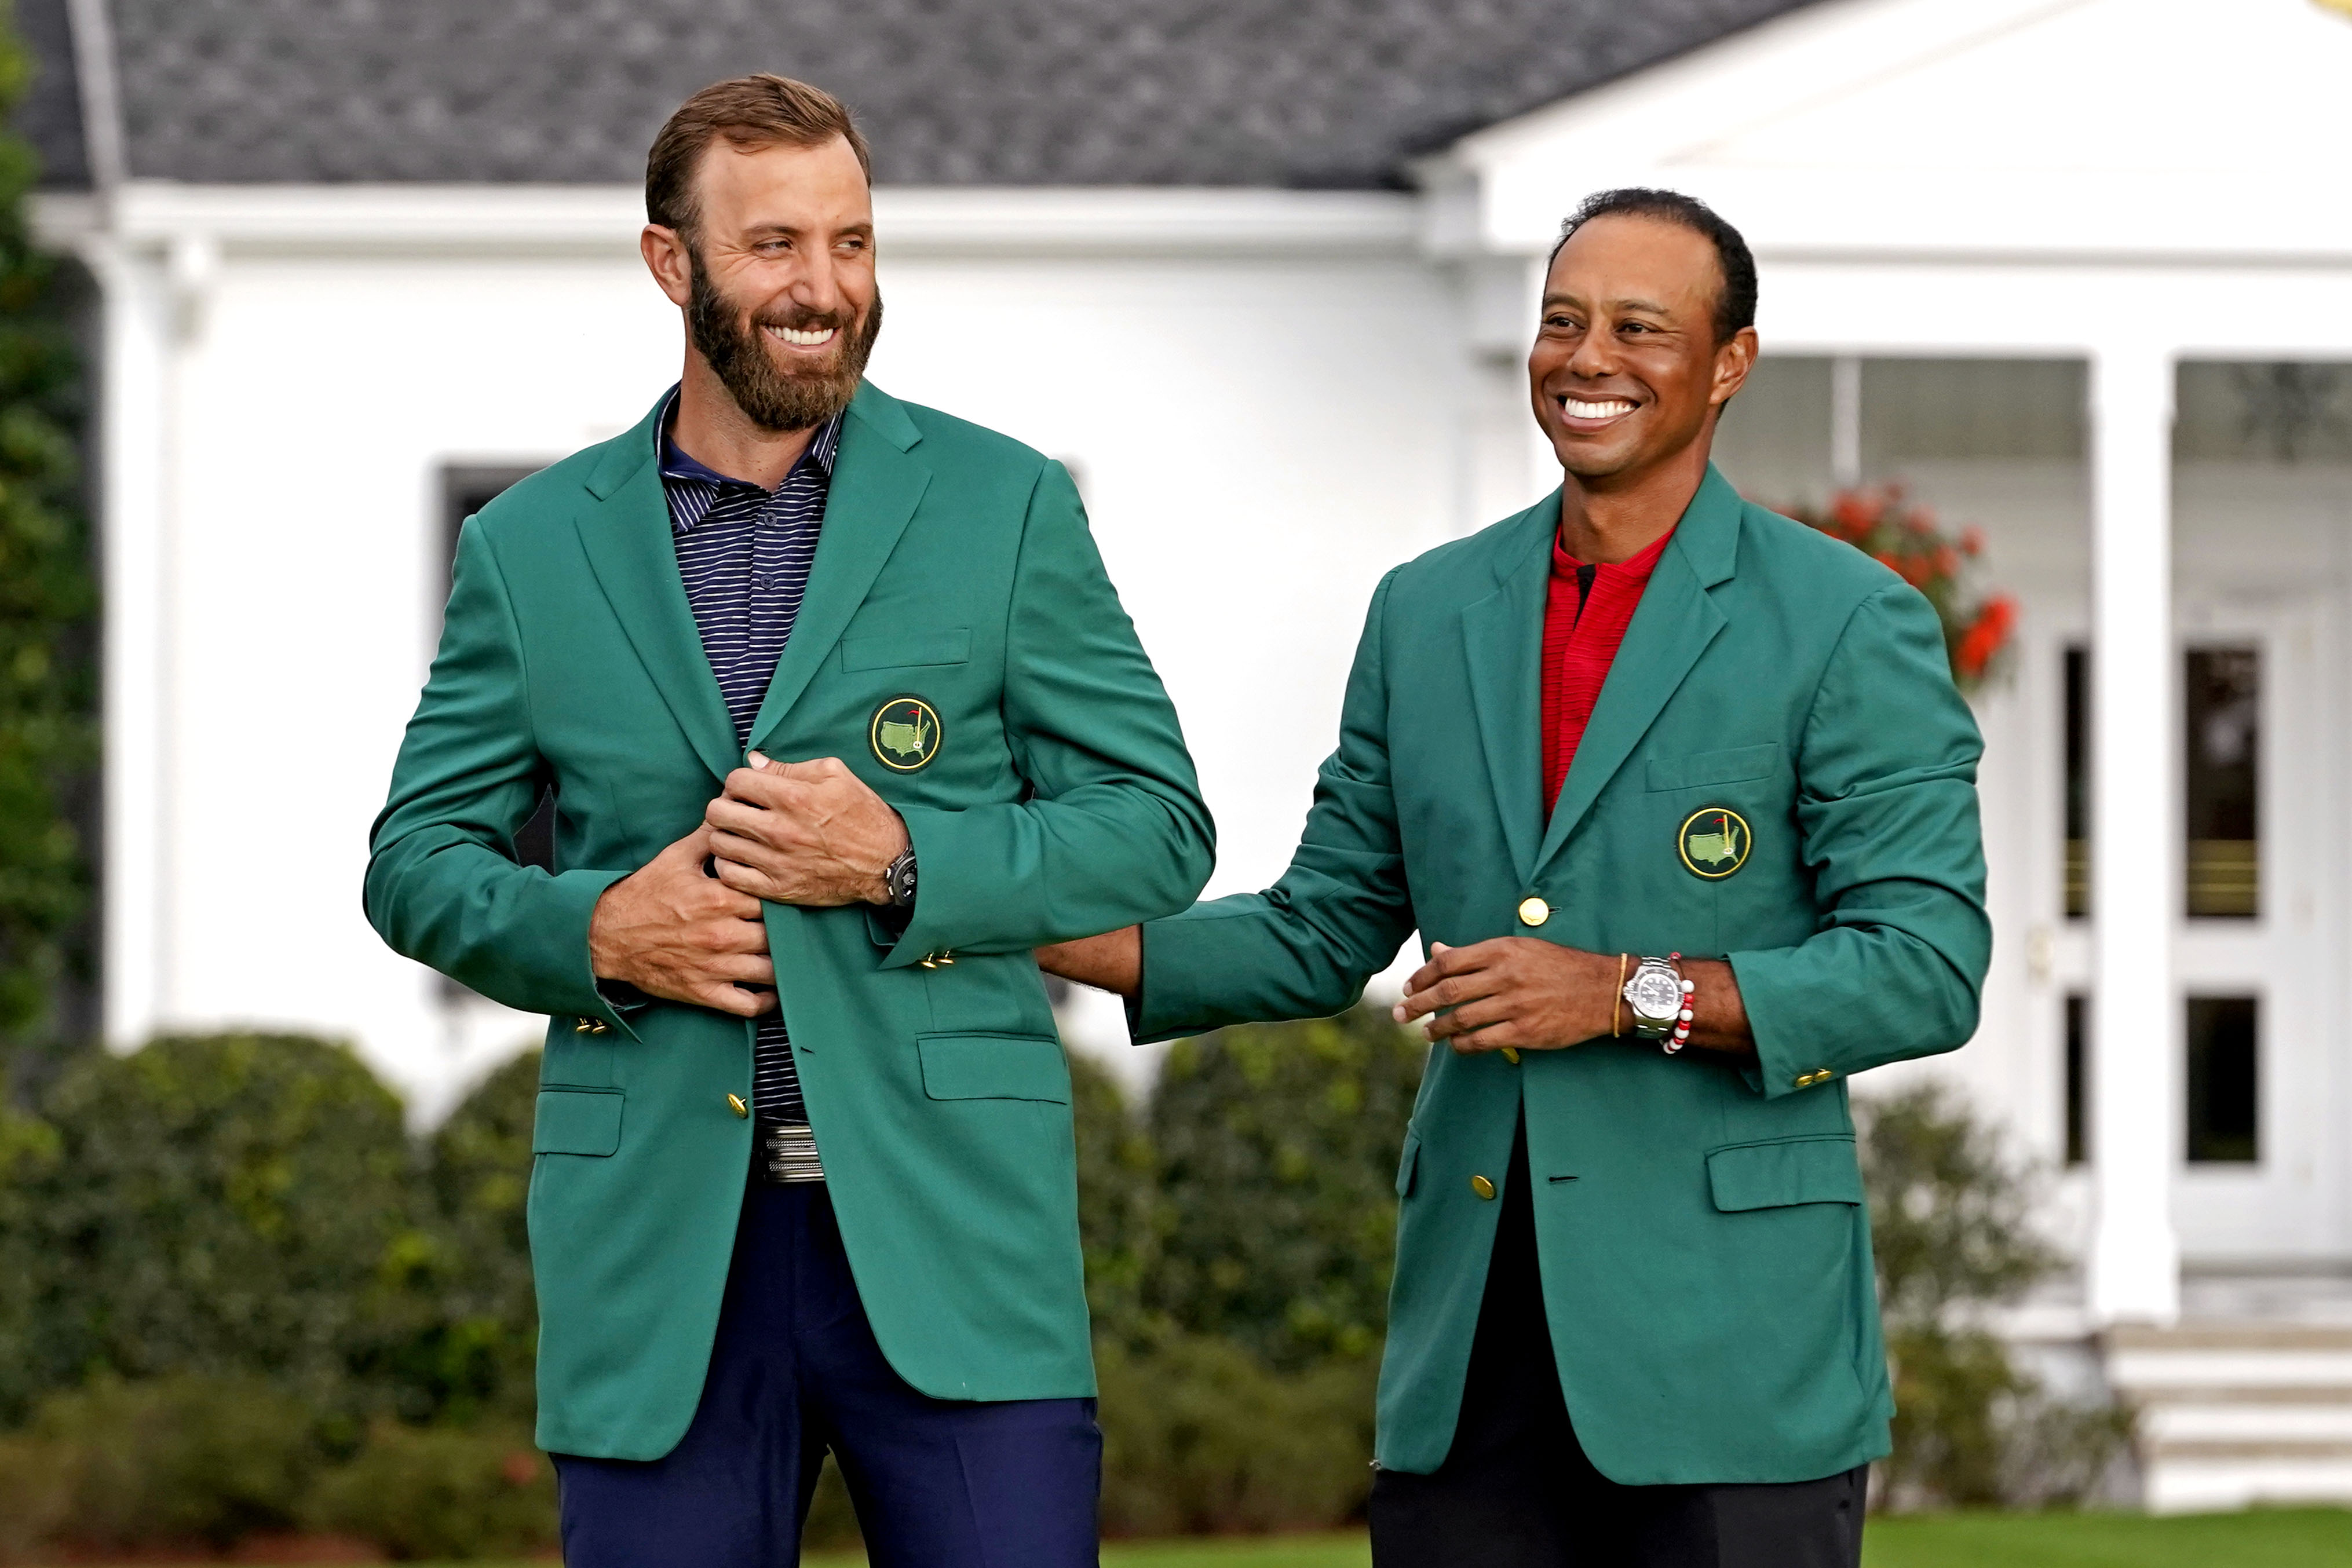 2019 Masters champion Tiger Woods presents Dustin Johnson with the green jacket after winning The Masters golf tournament at Augusta National GC.